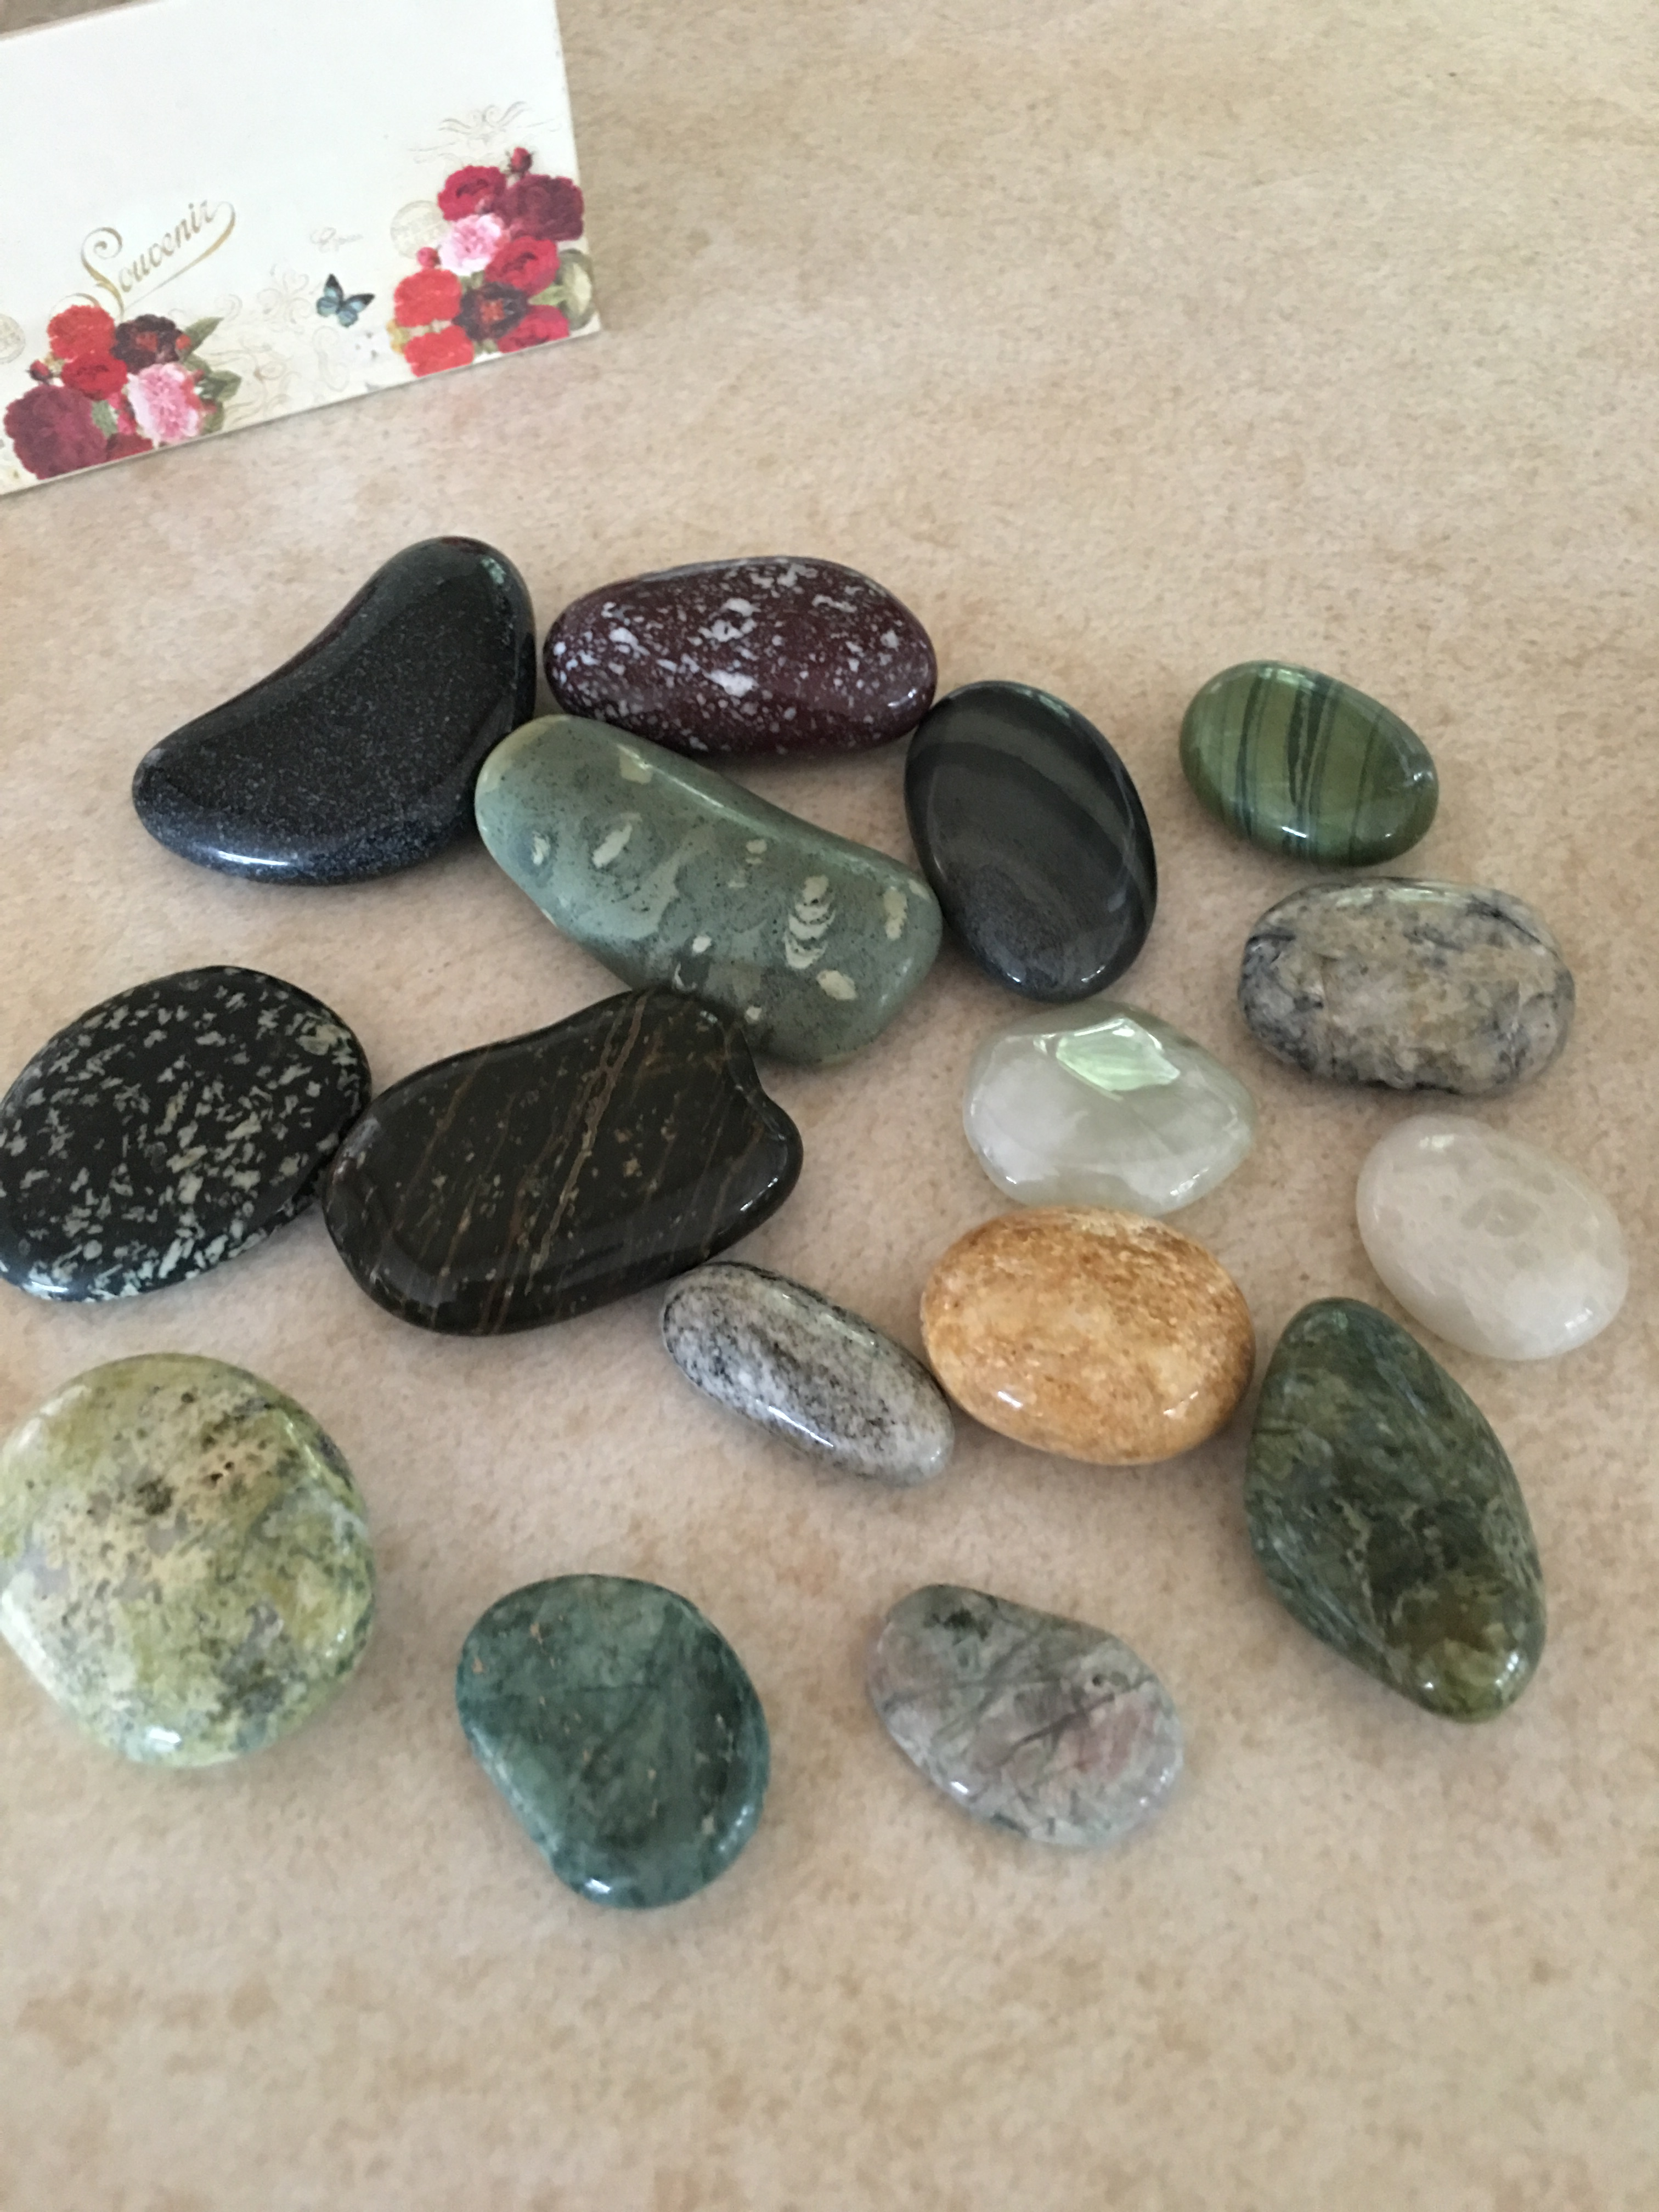 gemstones on bench.JPG